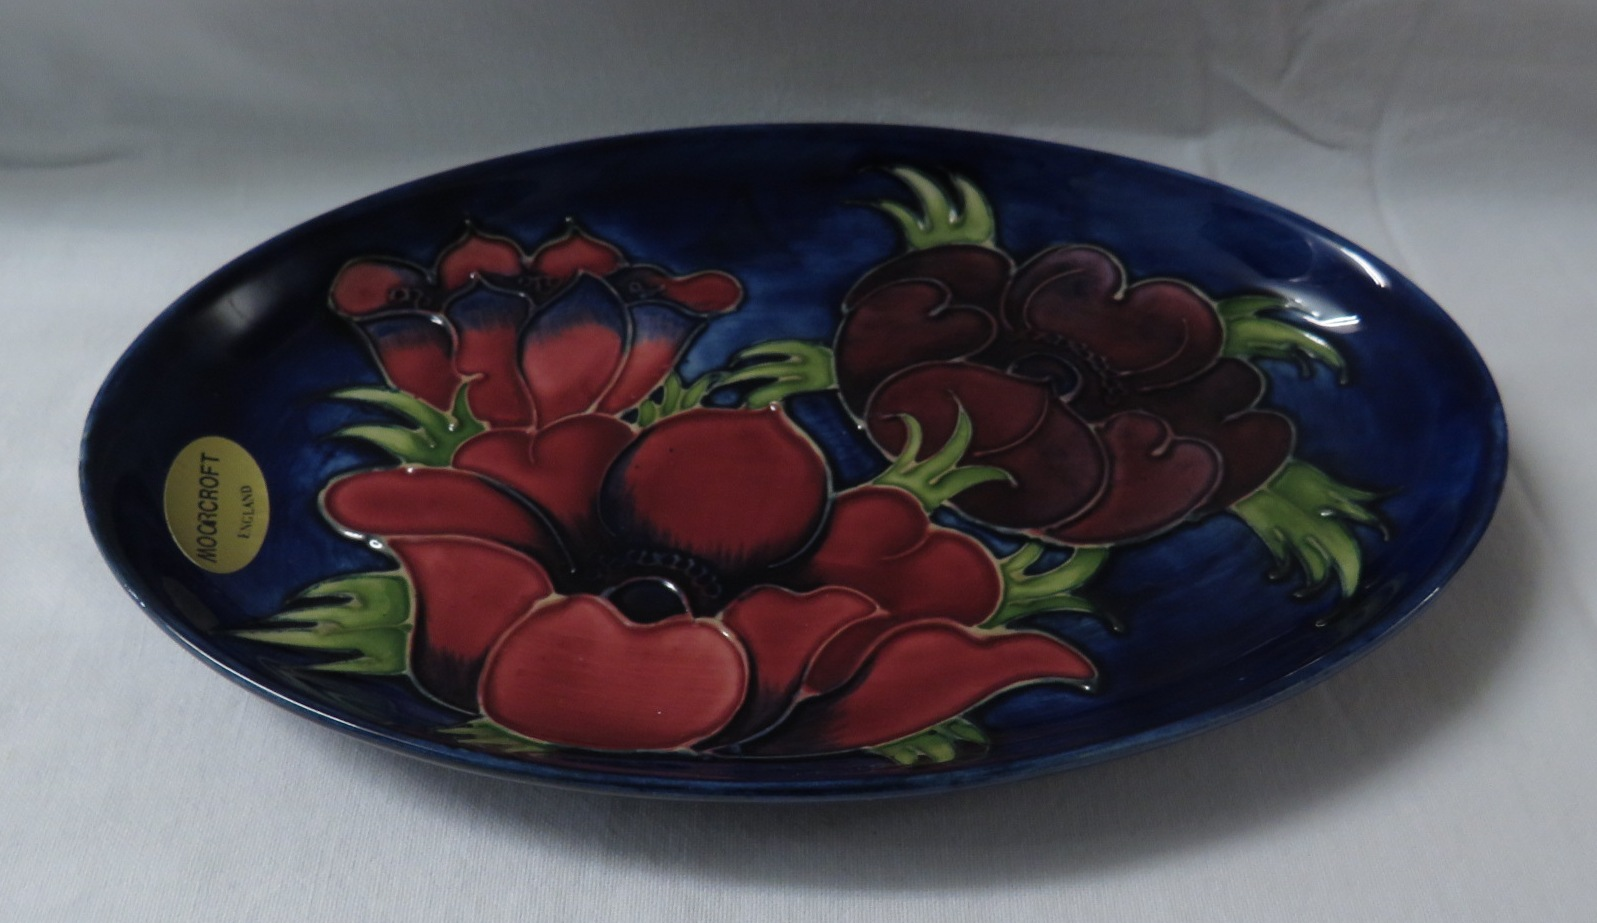 Lot 10 - Moorcroft pottery oval dish, blue ground painted with red and maroon poppies, stamped MOORCROFT MADE